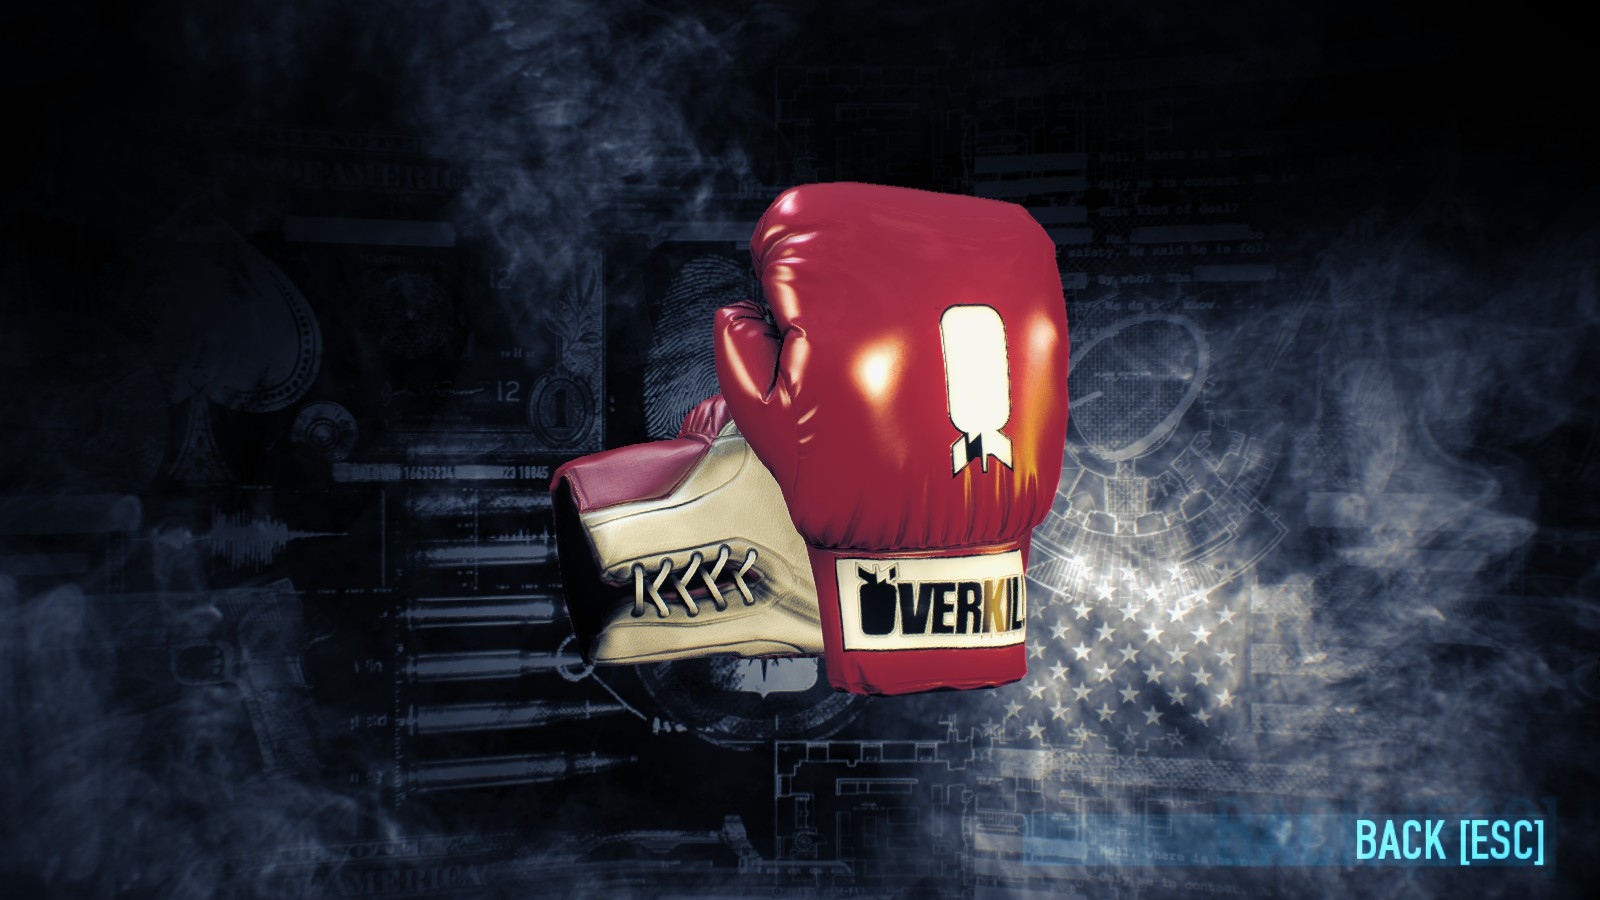 OVERKILL Boxing Gloves | Payday Wiki | FANDOM powered by Wikia